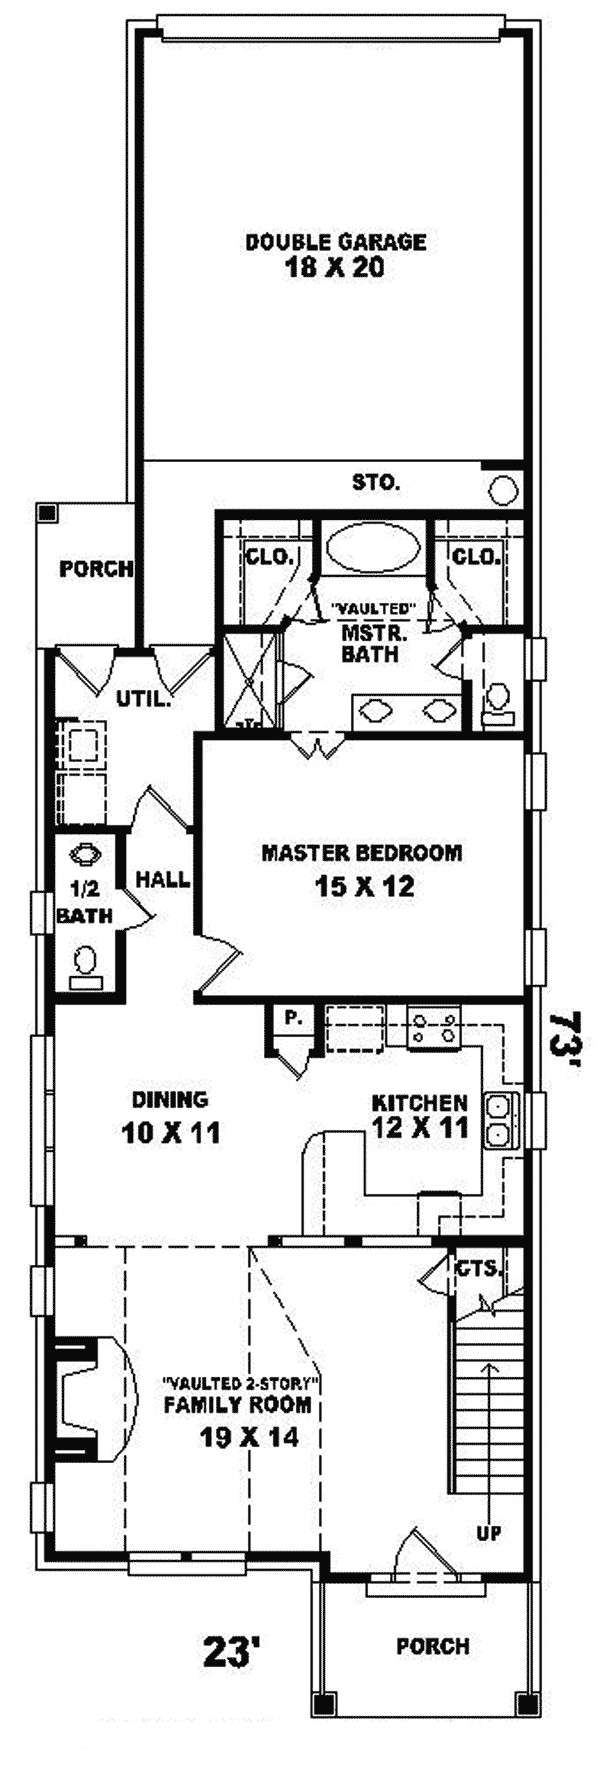 Narrow Lot House Plans with Side Entry Garage Narrow Lot ... on narrow lot modular ranch plans, narrow city lot house plans, narrow corner lot house floor plans, narrow lot urban house plans, earth sheltered homes with garage, narrow lot luxury house plans, house with drive under garage, narrow house plans with rear garage, mountain home plans with garage, vacation home plans with garage, narrow lot mediterranean house plans, narrow lot house plans lake, narrow lot old house plans, narrow lot house plans modern, cape cod home plans with garage, expensive modern car garage, narrow lot homes, narrow lot house plans cottage, narrow lot house plans waterfront, narrow lot ranch house plans,